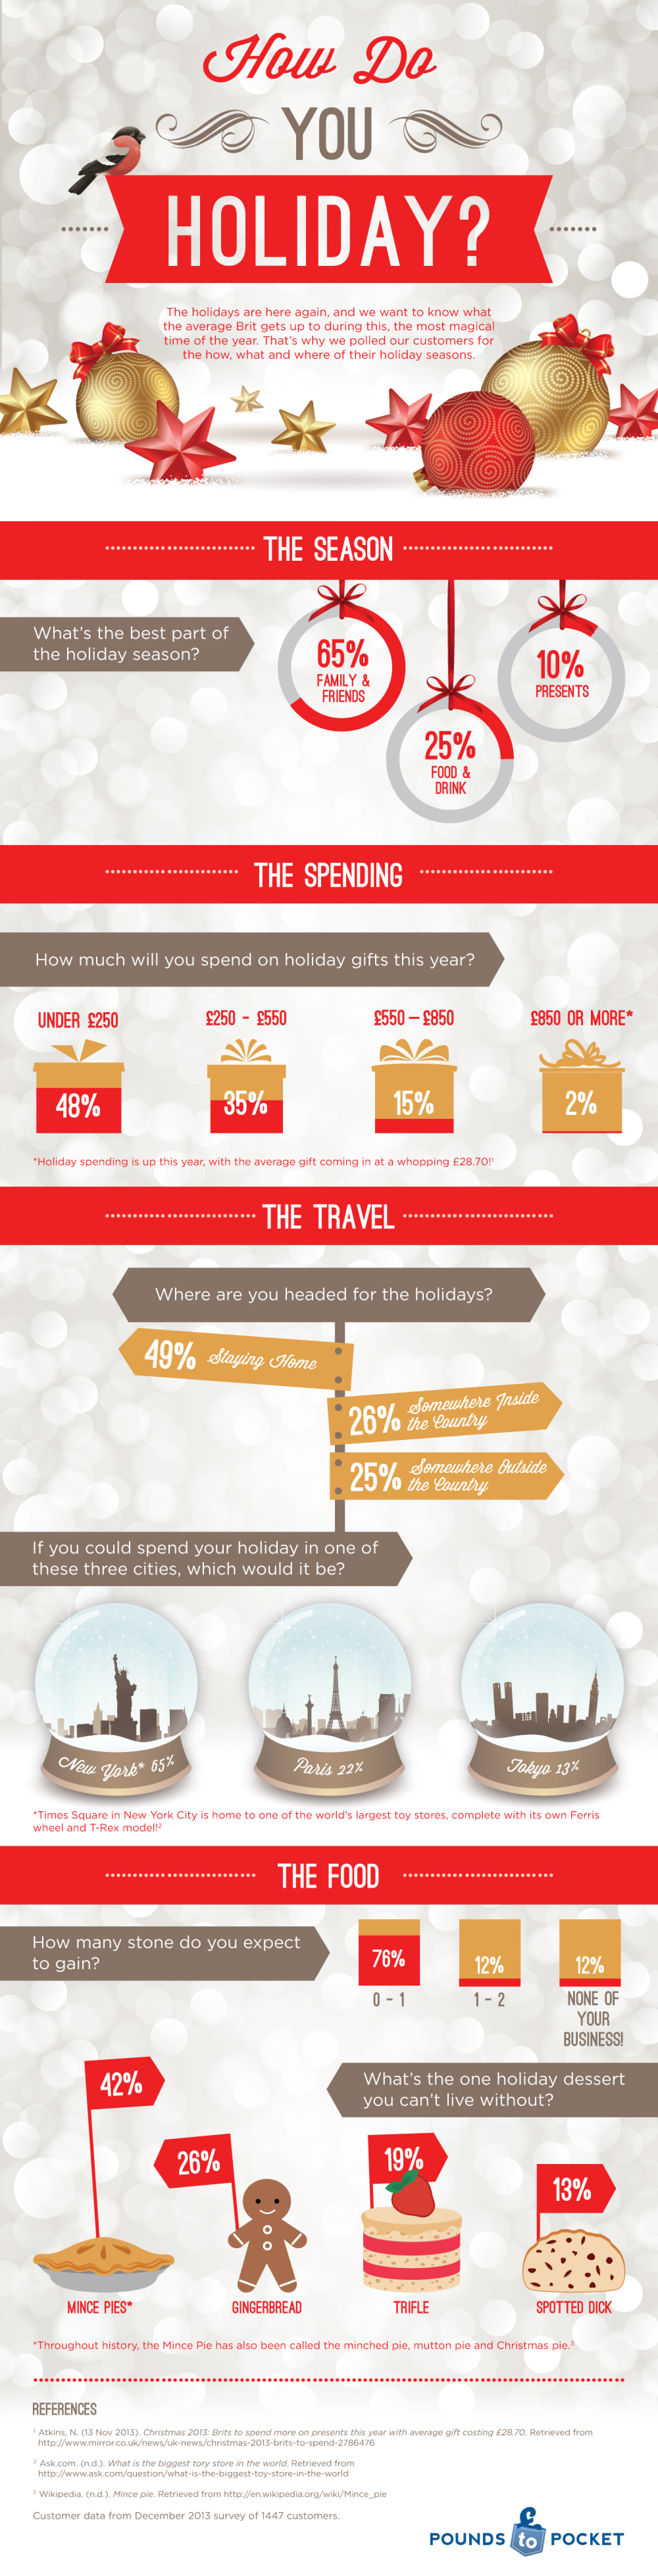 How do you holiday? Infographic